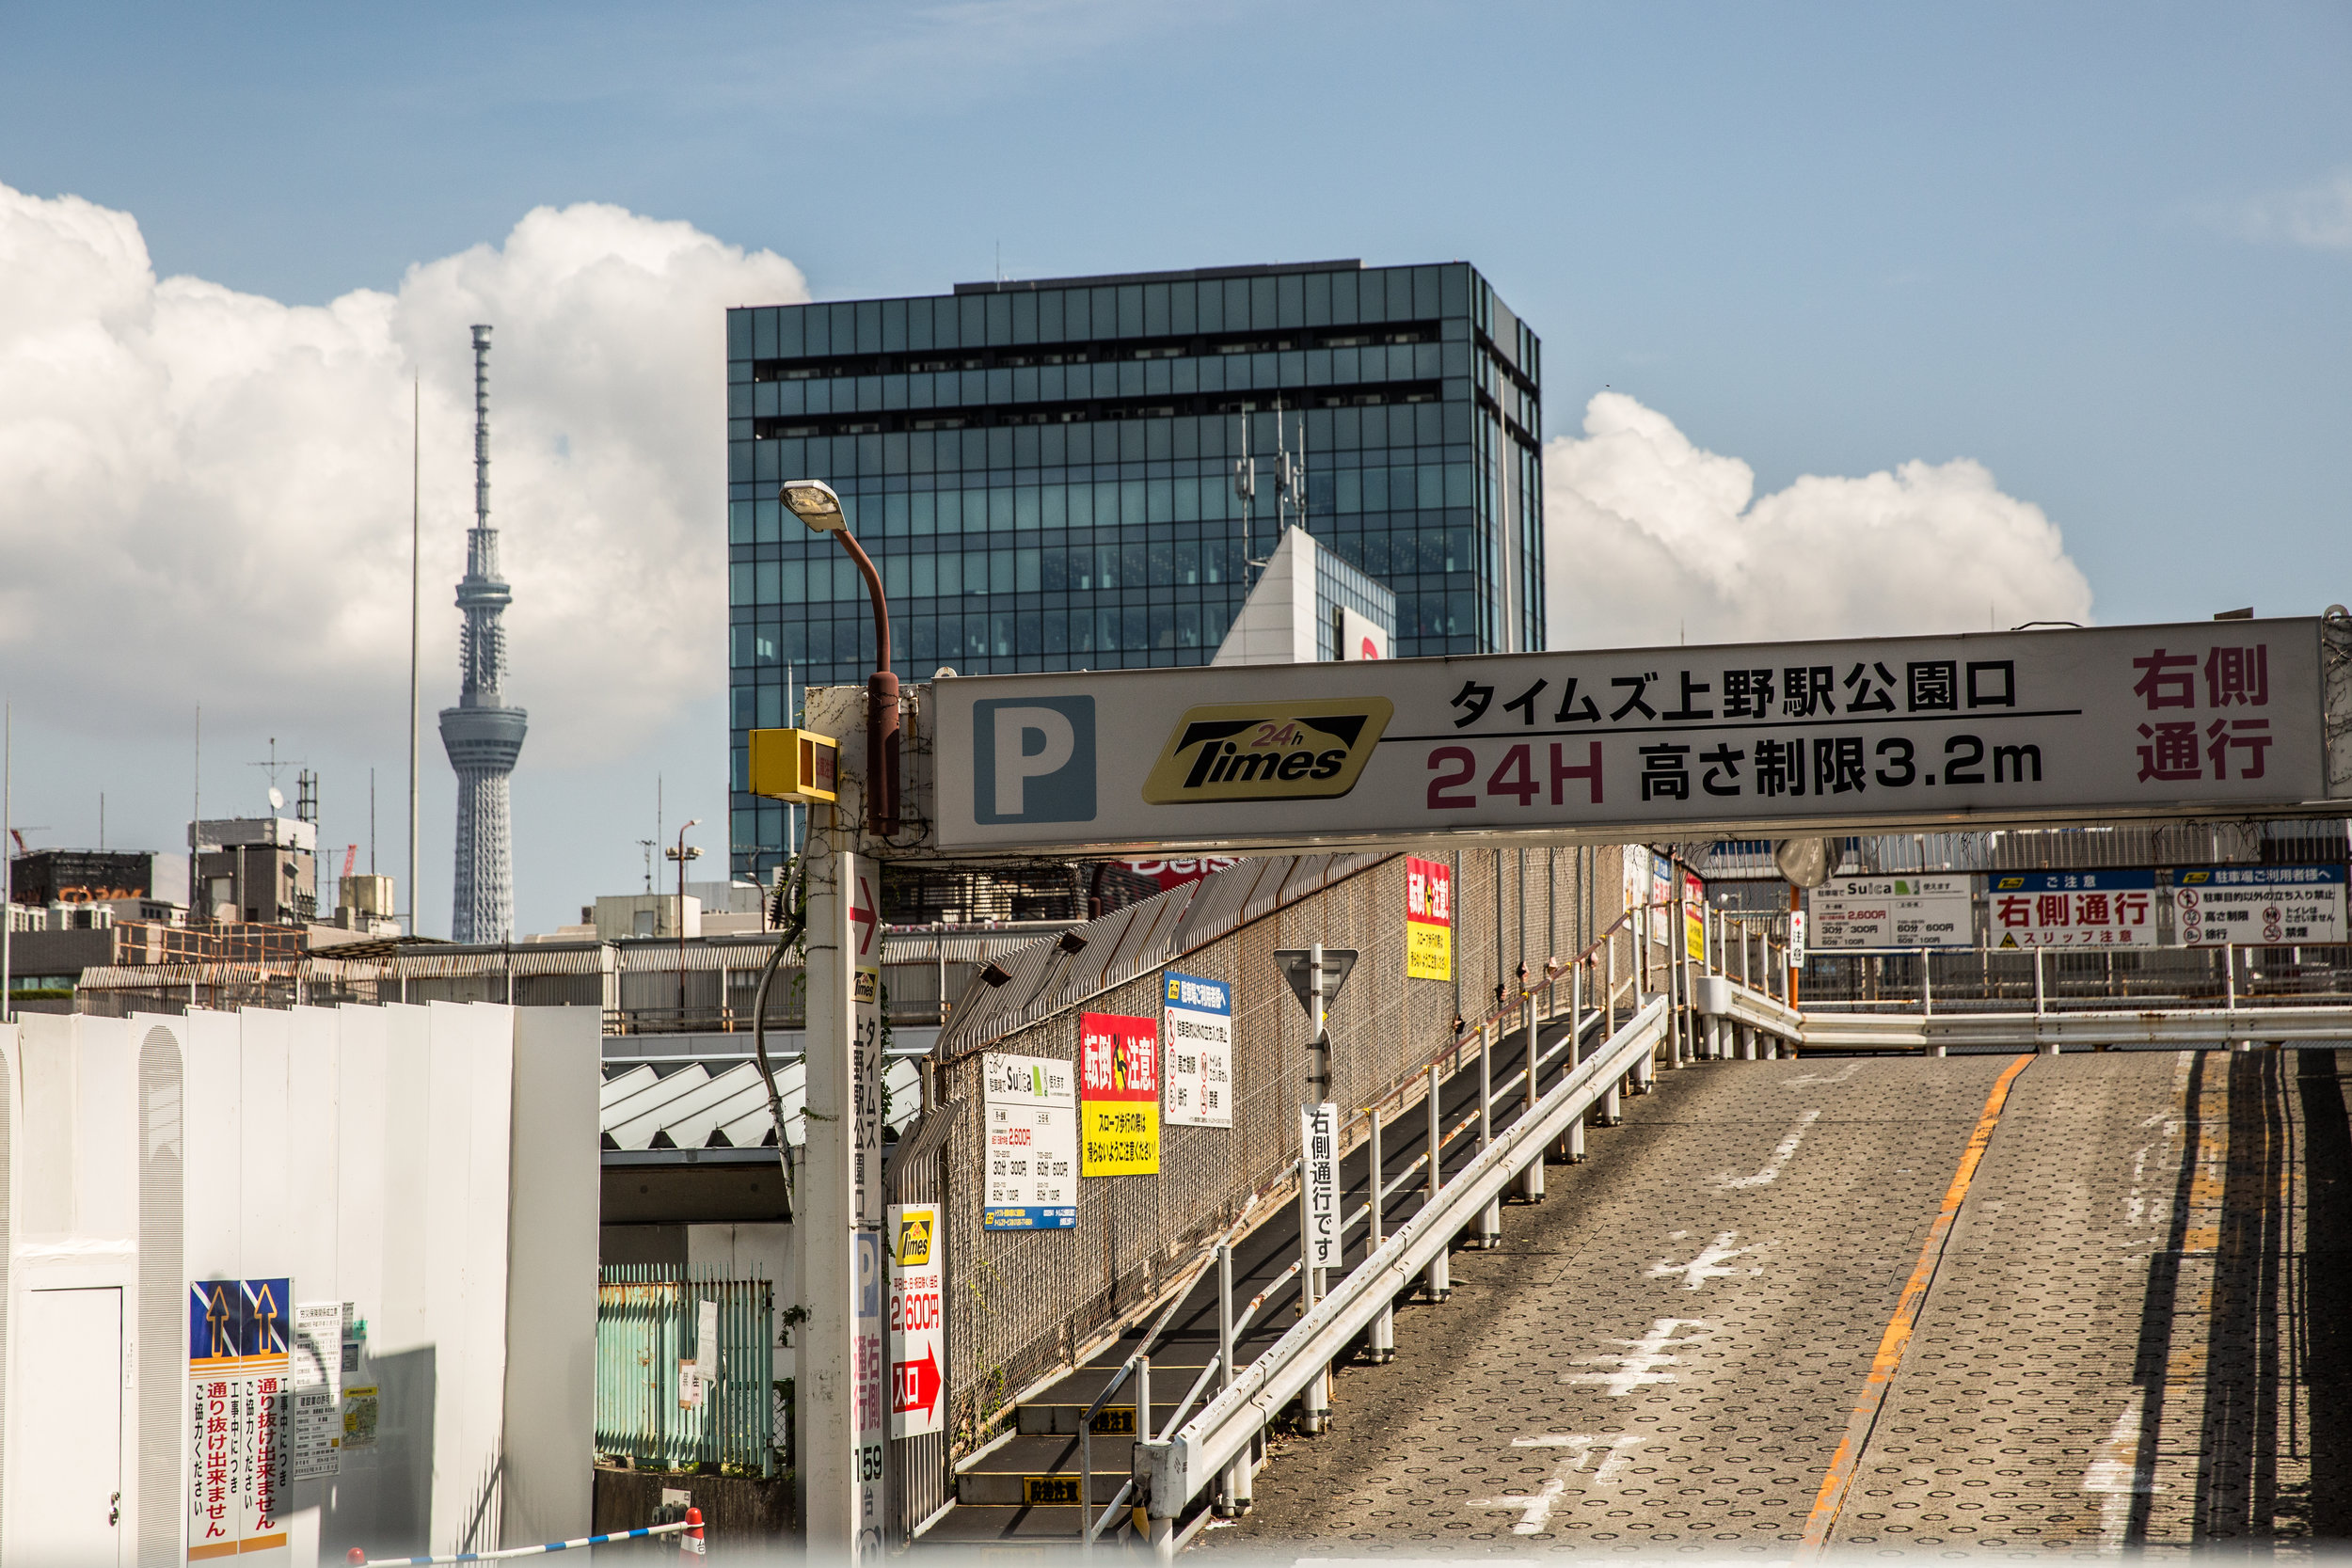 Outside Ueno station, Tokyo Skytree can be seen in the distance.